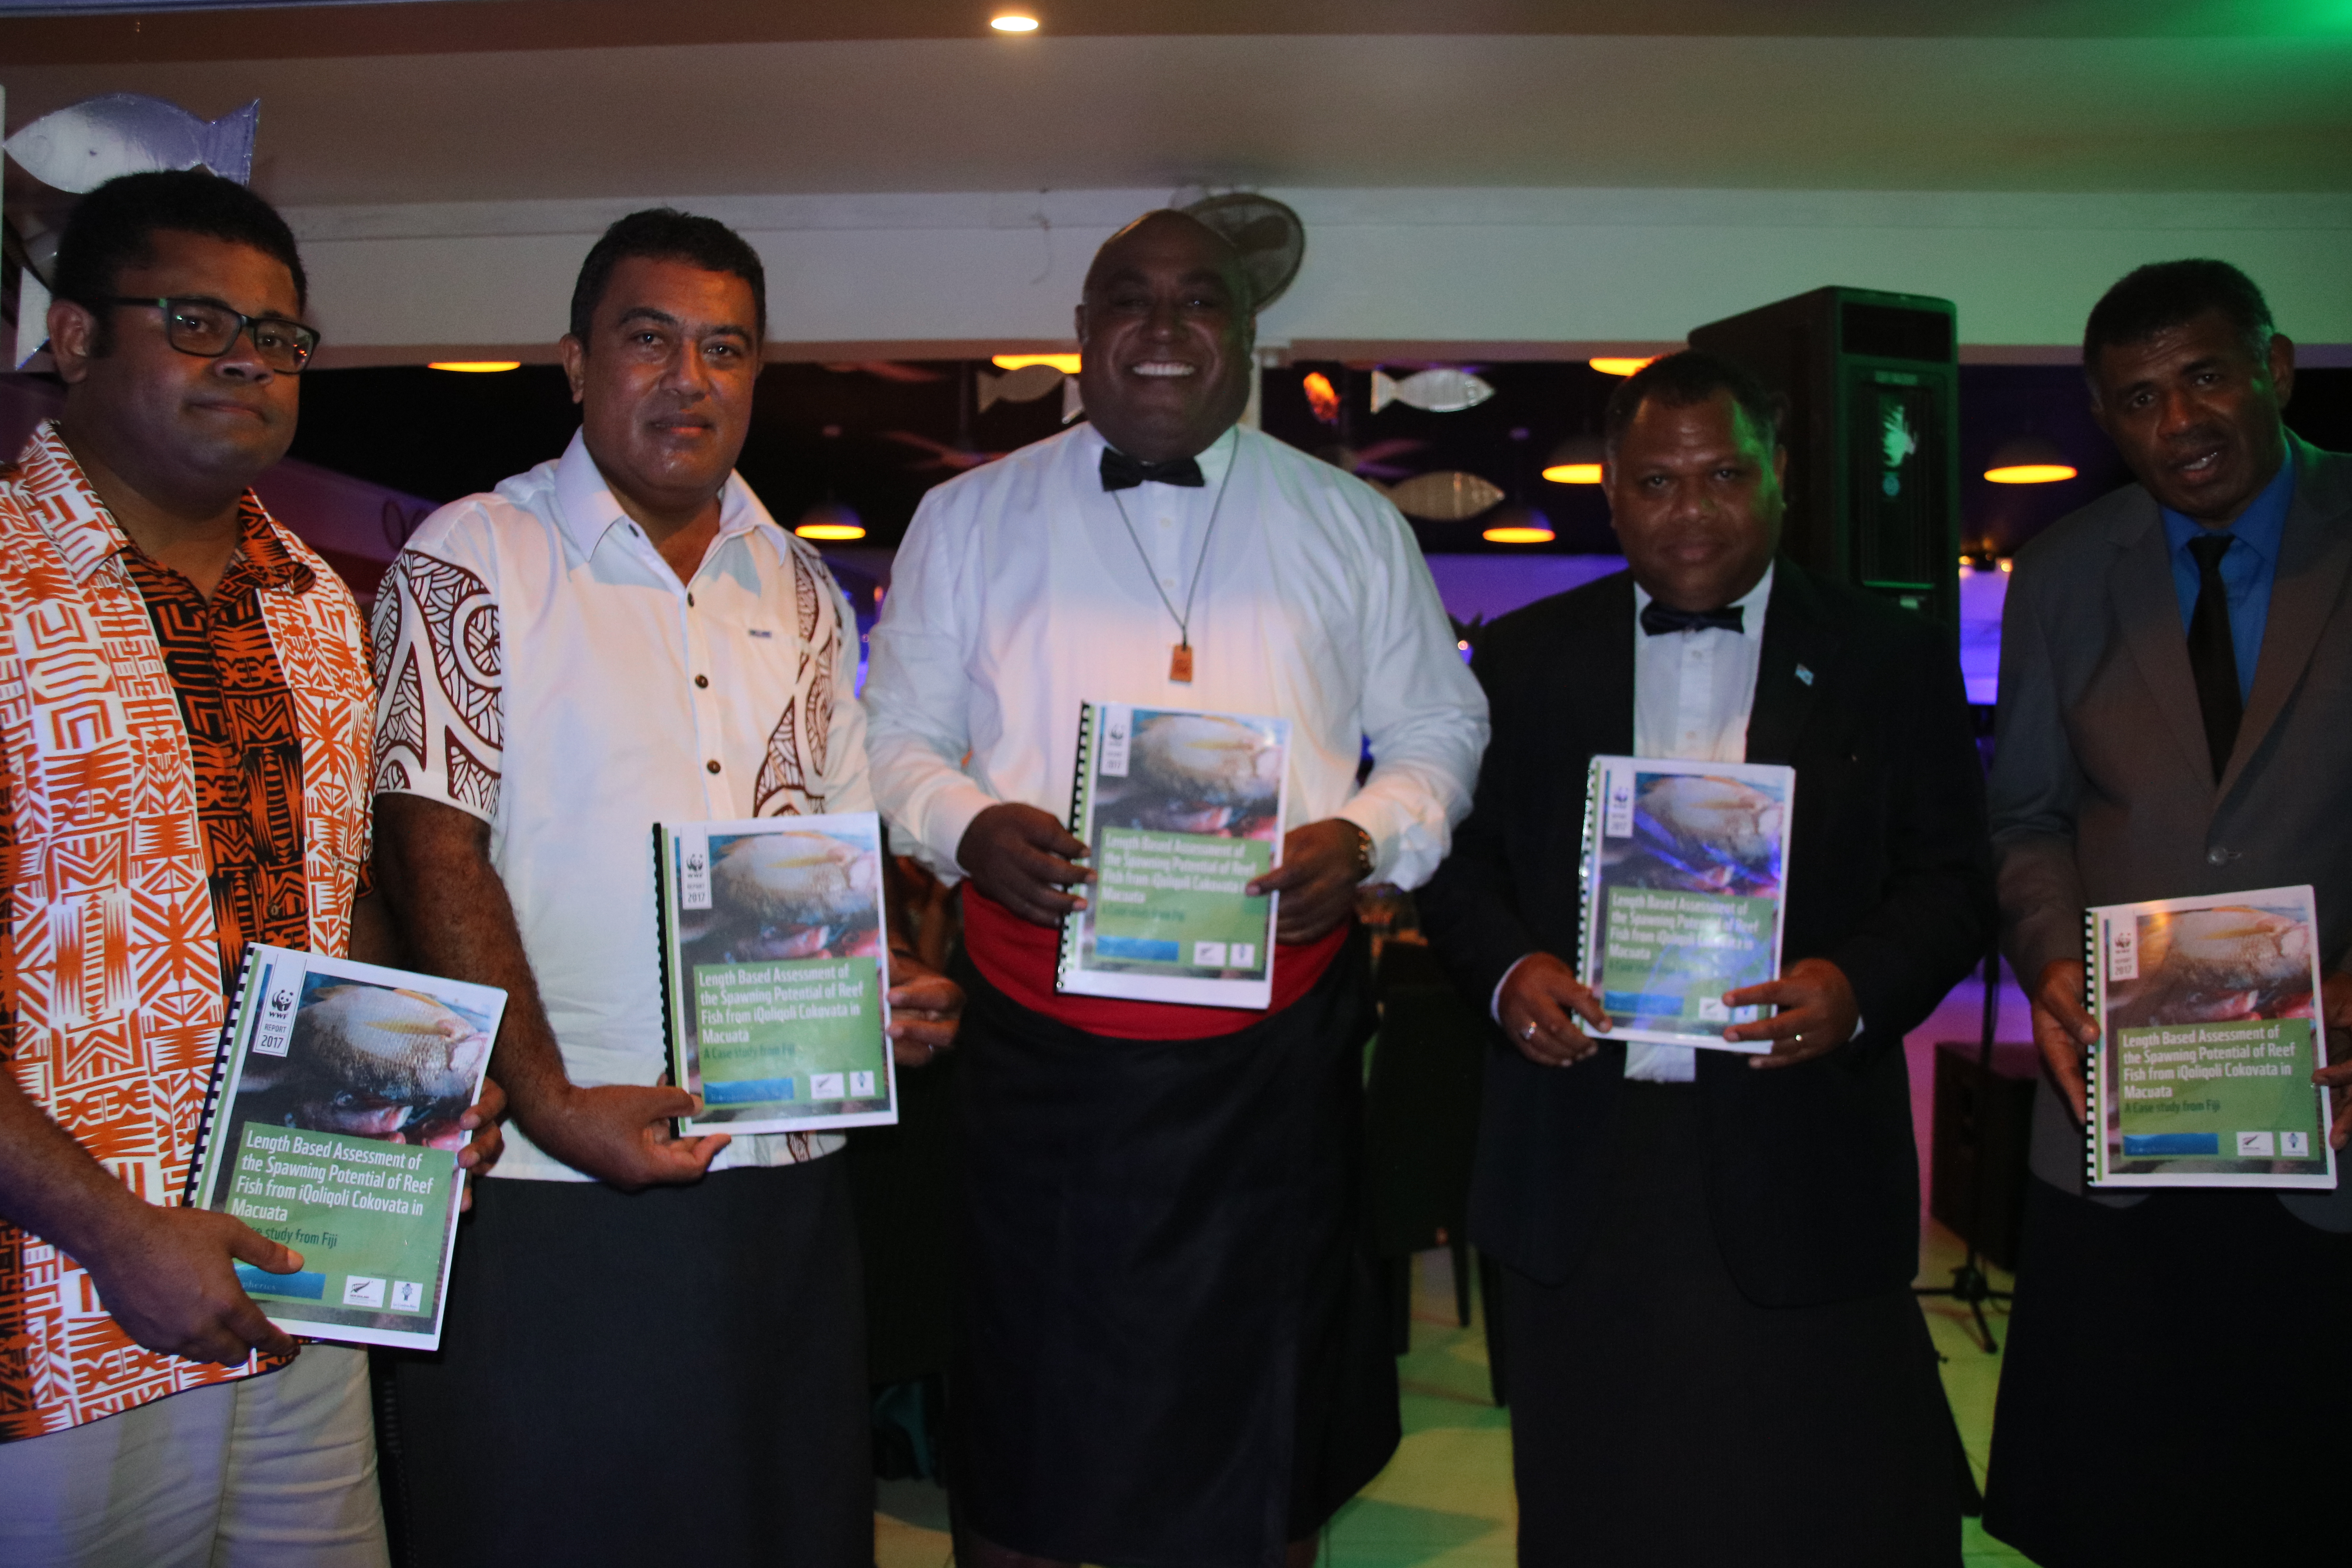 Minister of Fisheries Semi Koroilavesau (c) with fisheries stakeholders and WWF-Pacific's Laitia Tamata (Far Left) with the LB-SPR Macuata reports (credit: WWF Fij)